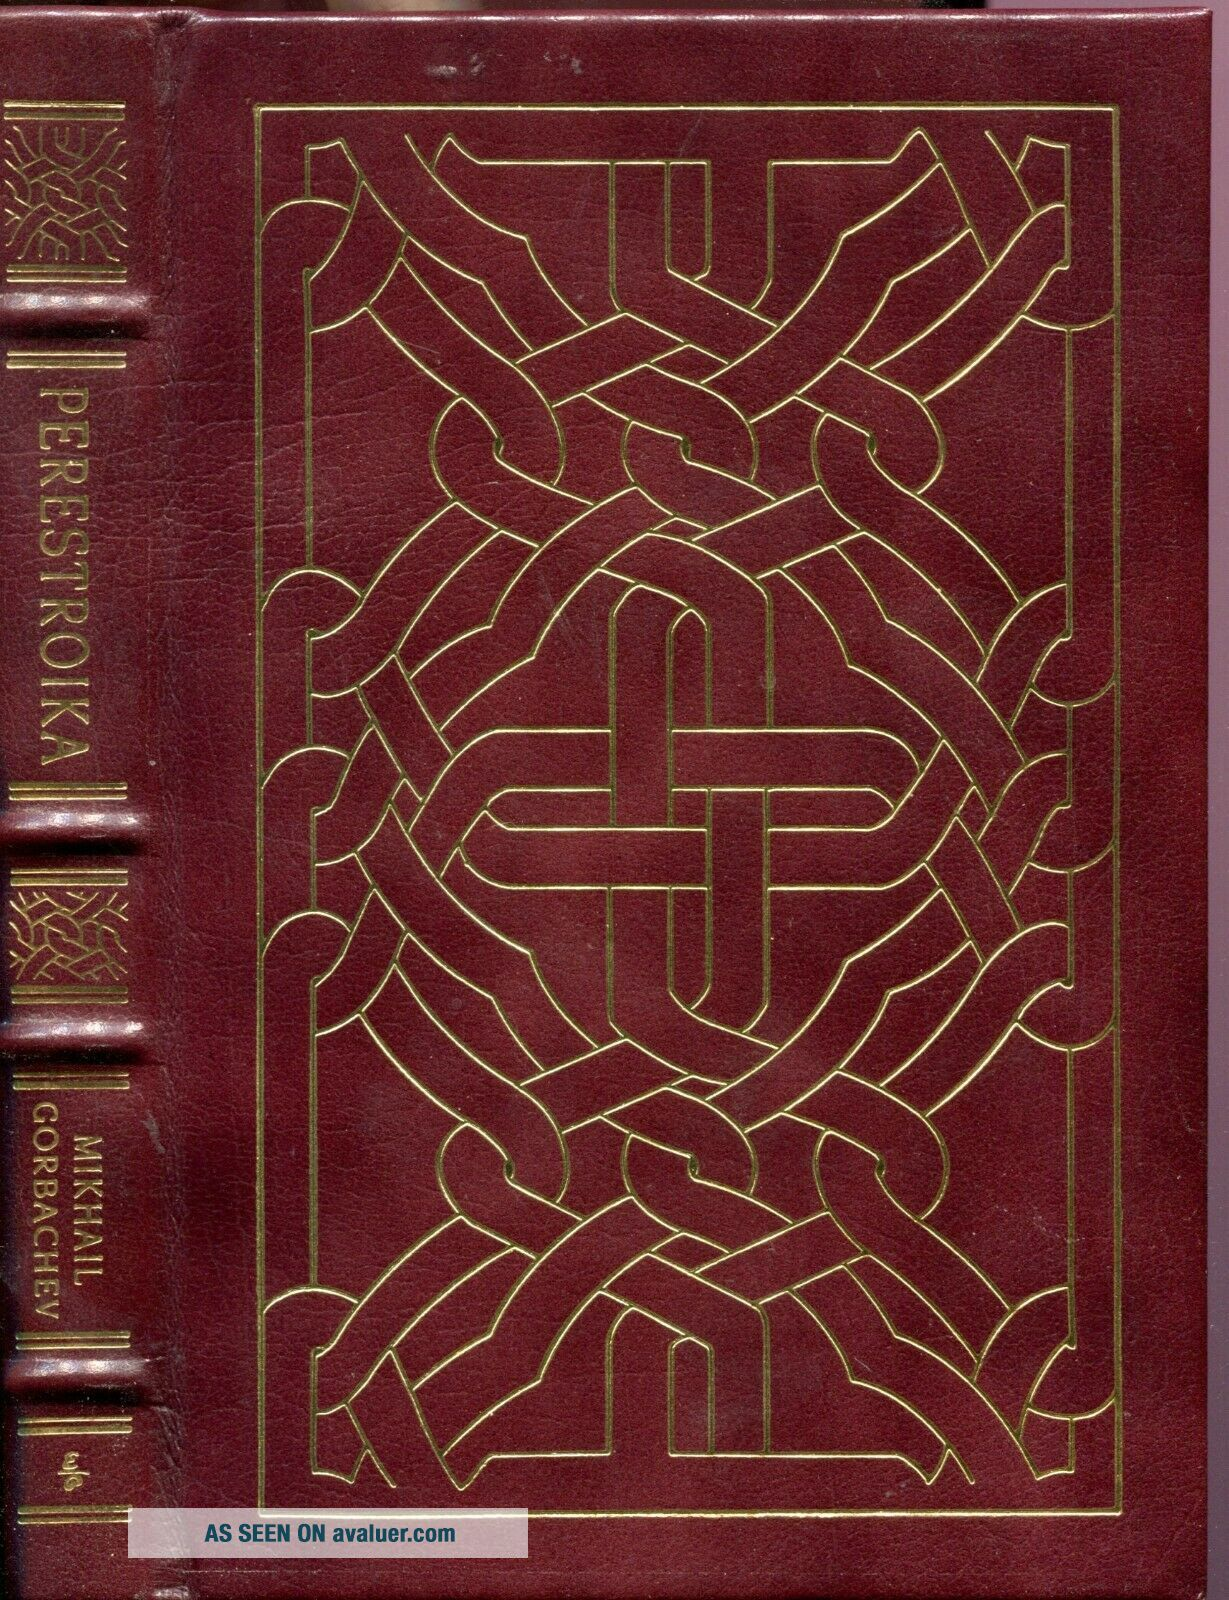 Mikhail Gorbachev / Easton Press Perestroika Limited Signed First Ed 88 of 250